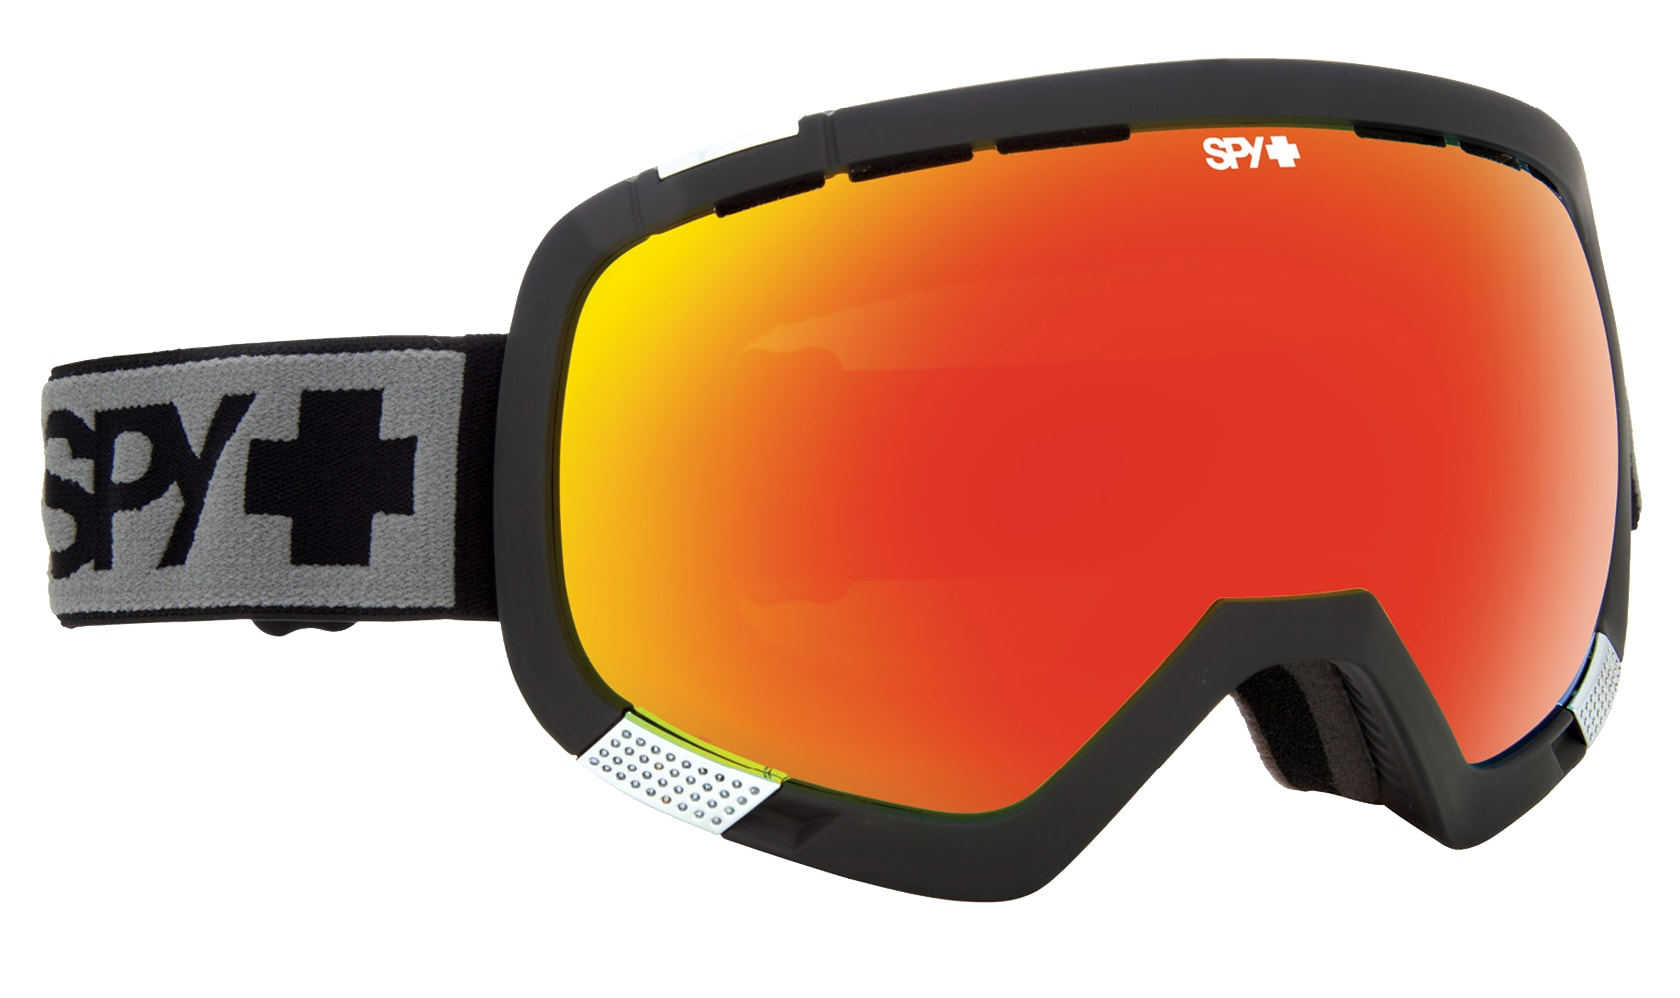 On Sale Spy Platoon Goggles Up To 40 Off